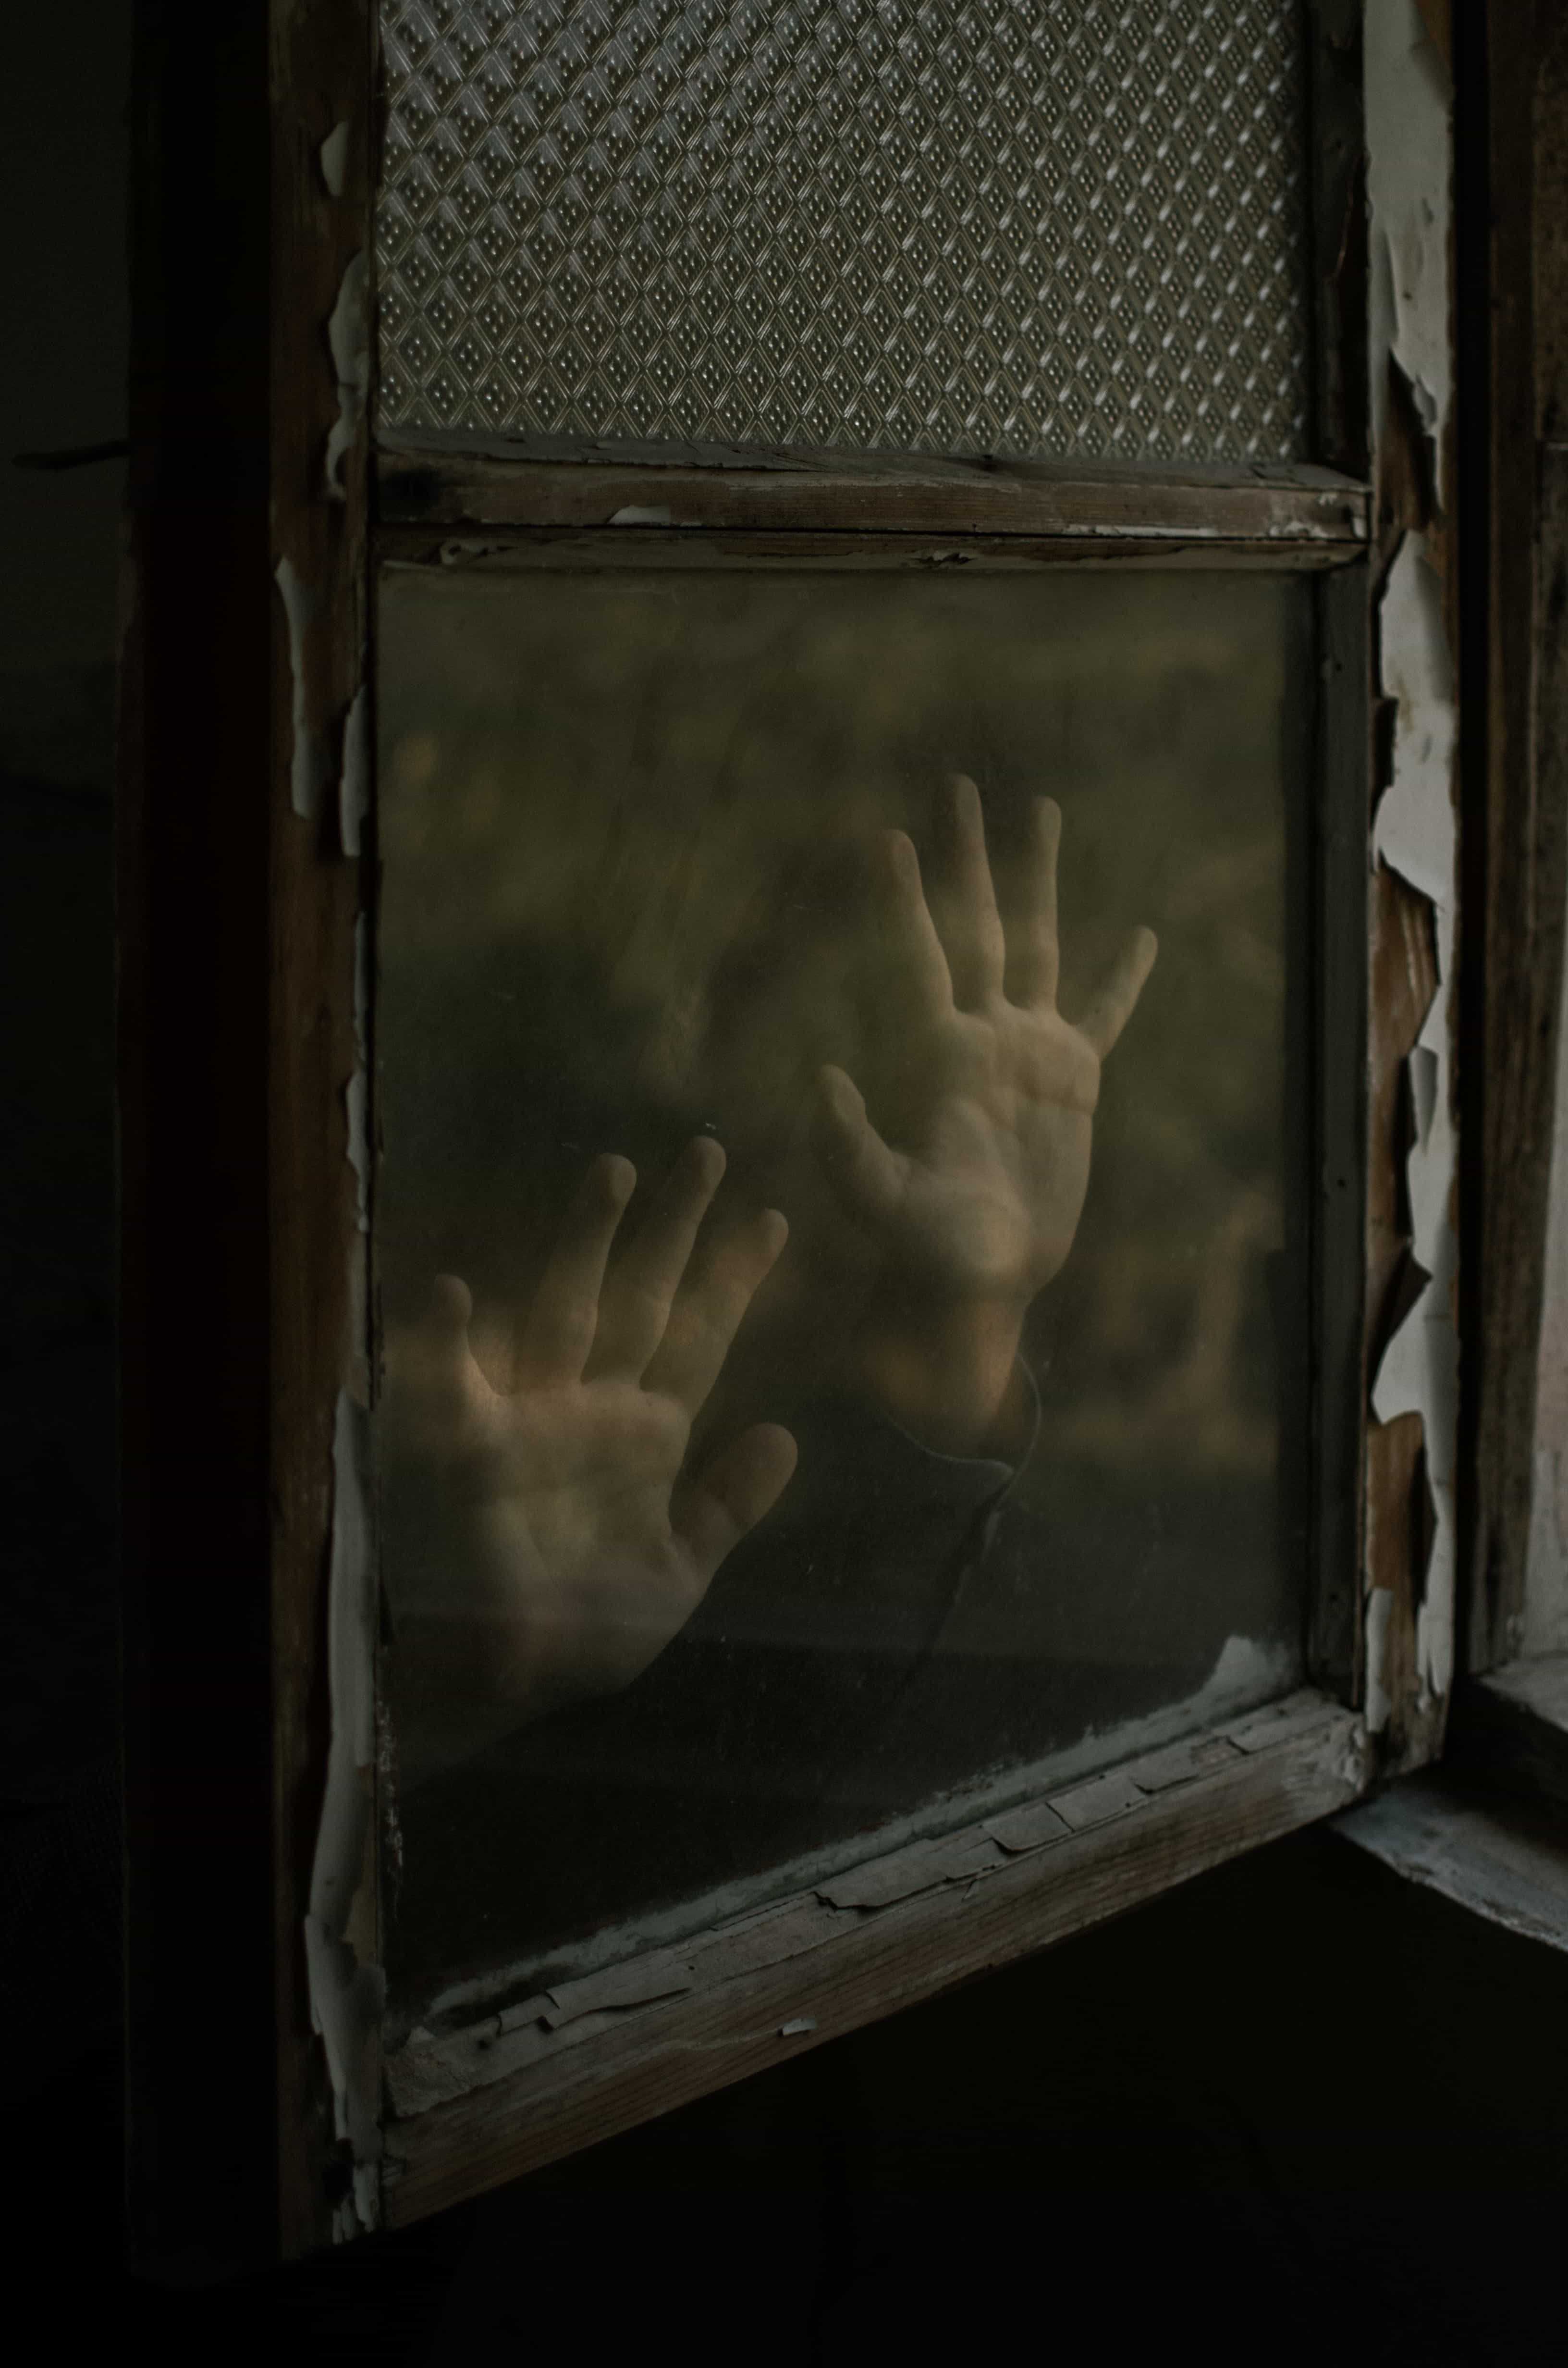 imprinted hands on old window pane